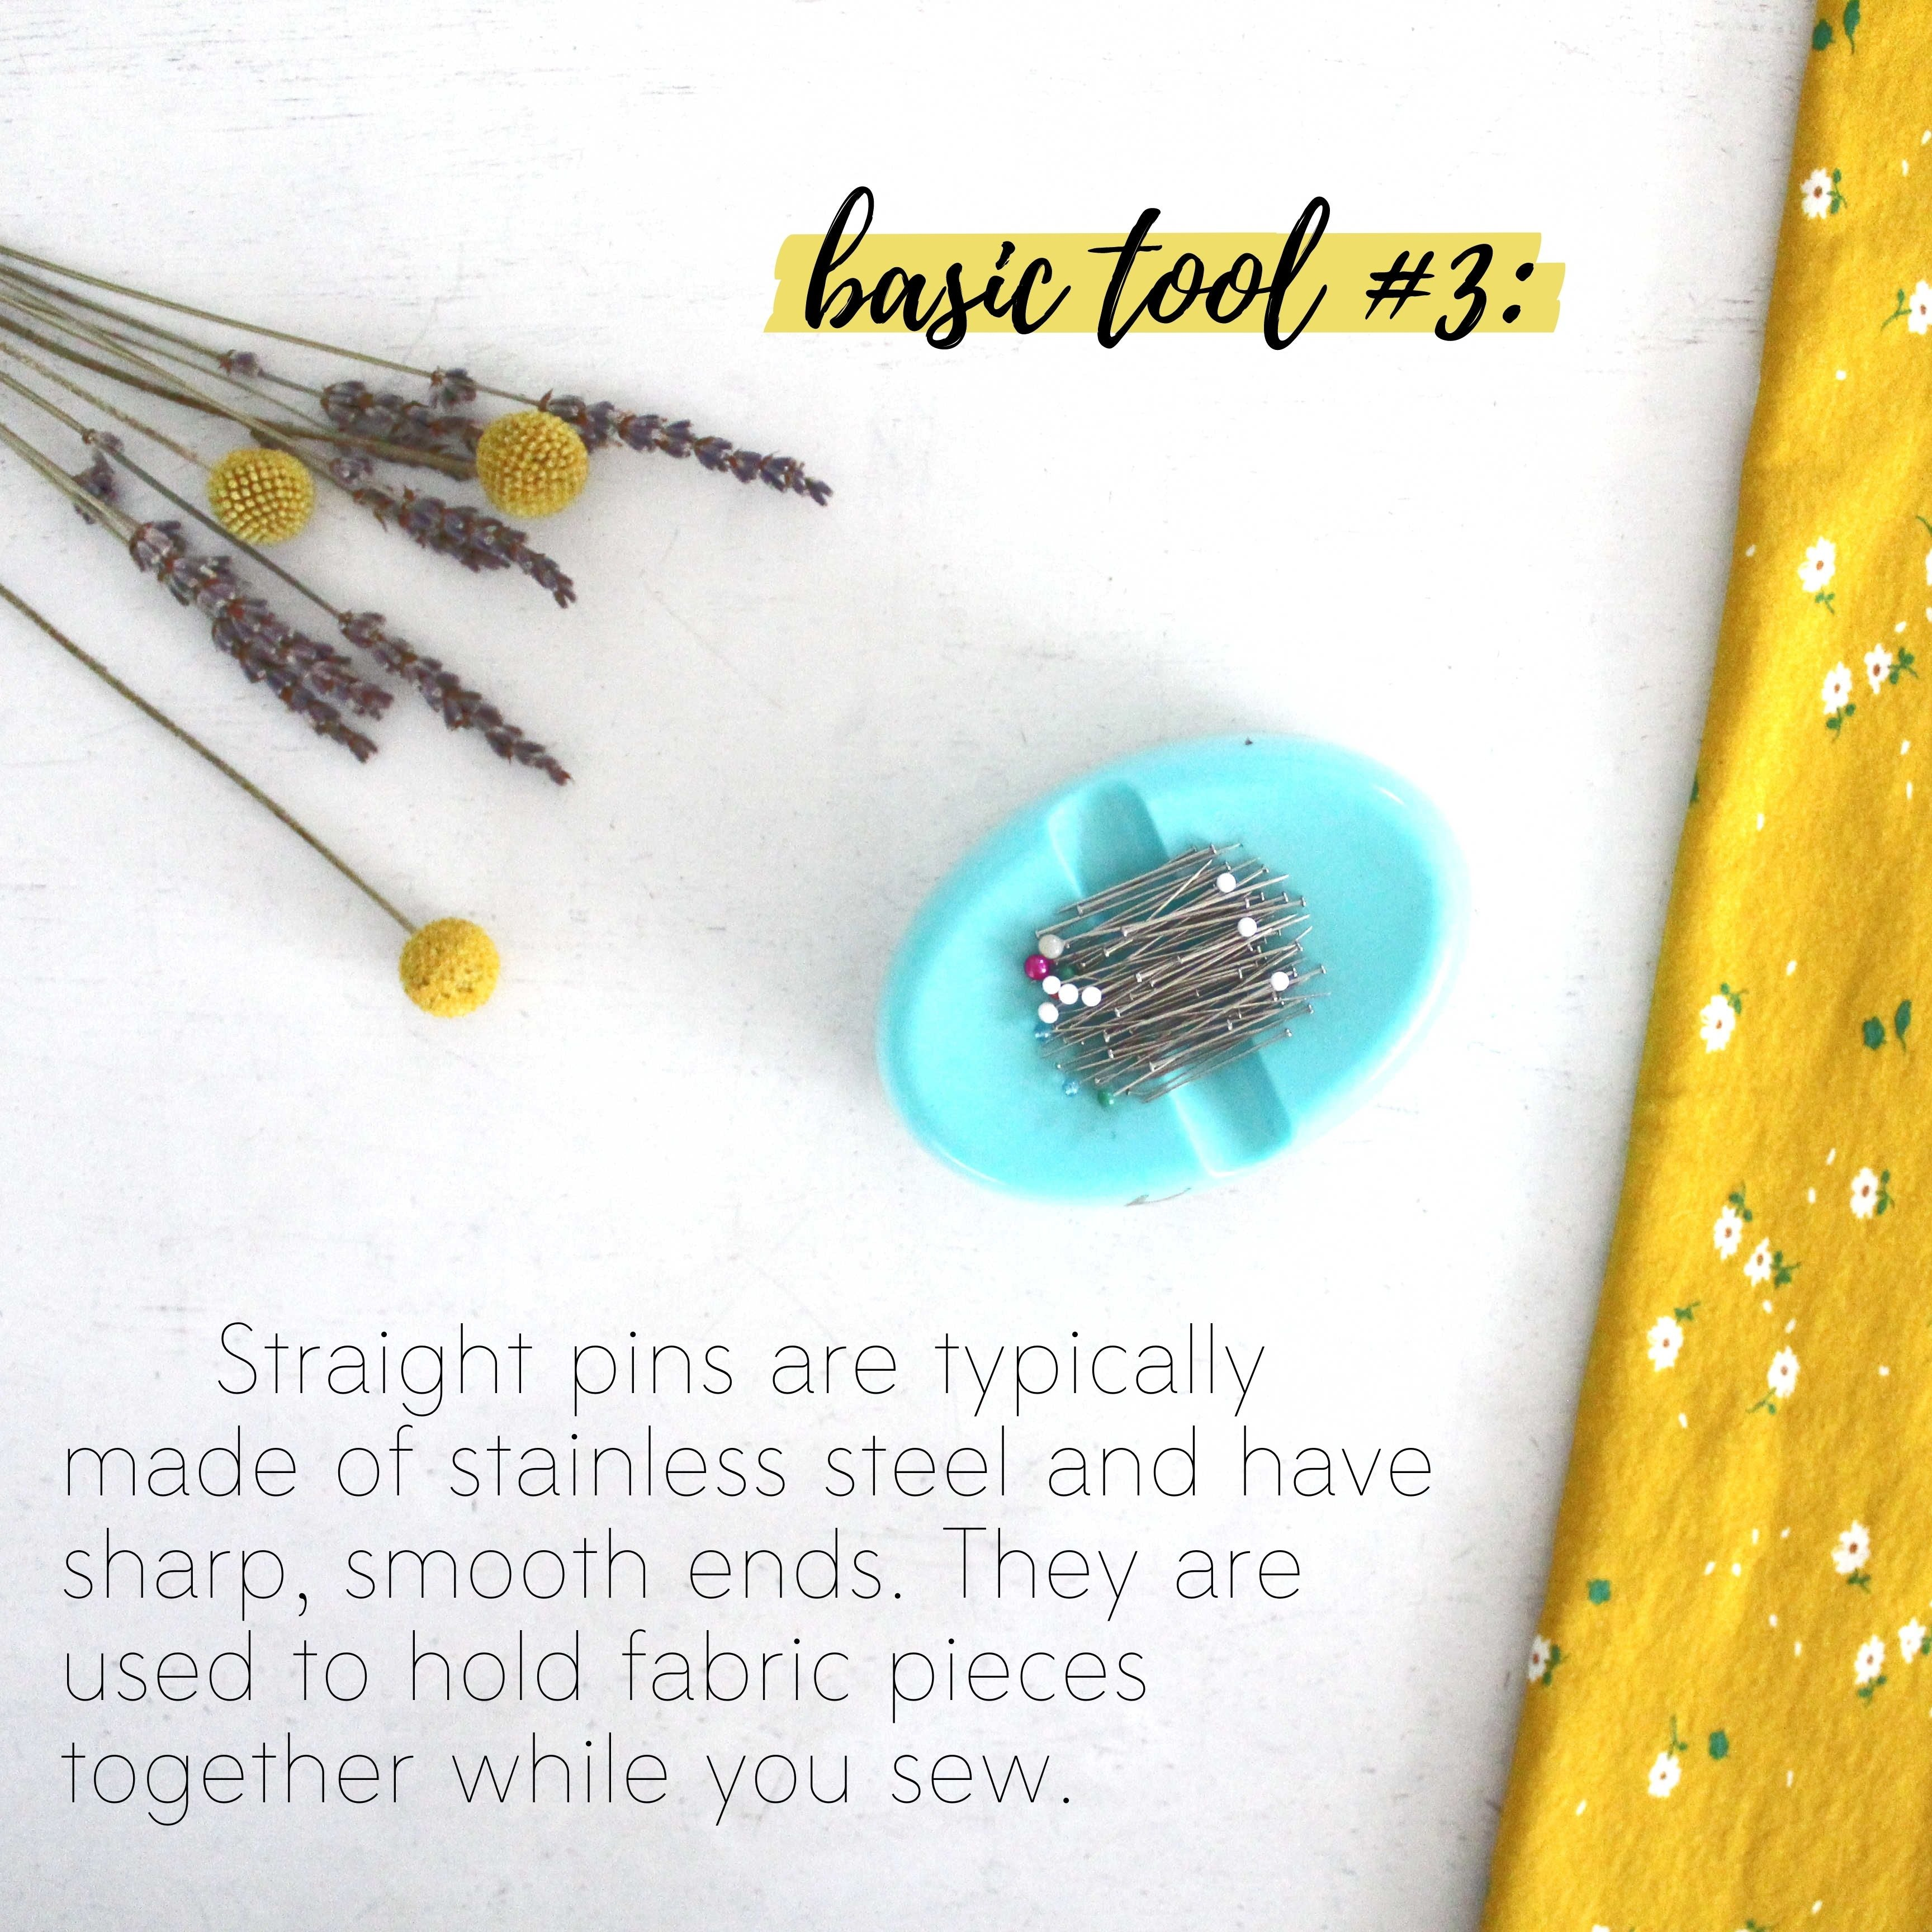 How To Build A Sewing Kit: Basic Tool #3, Straight Pins